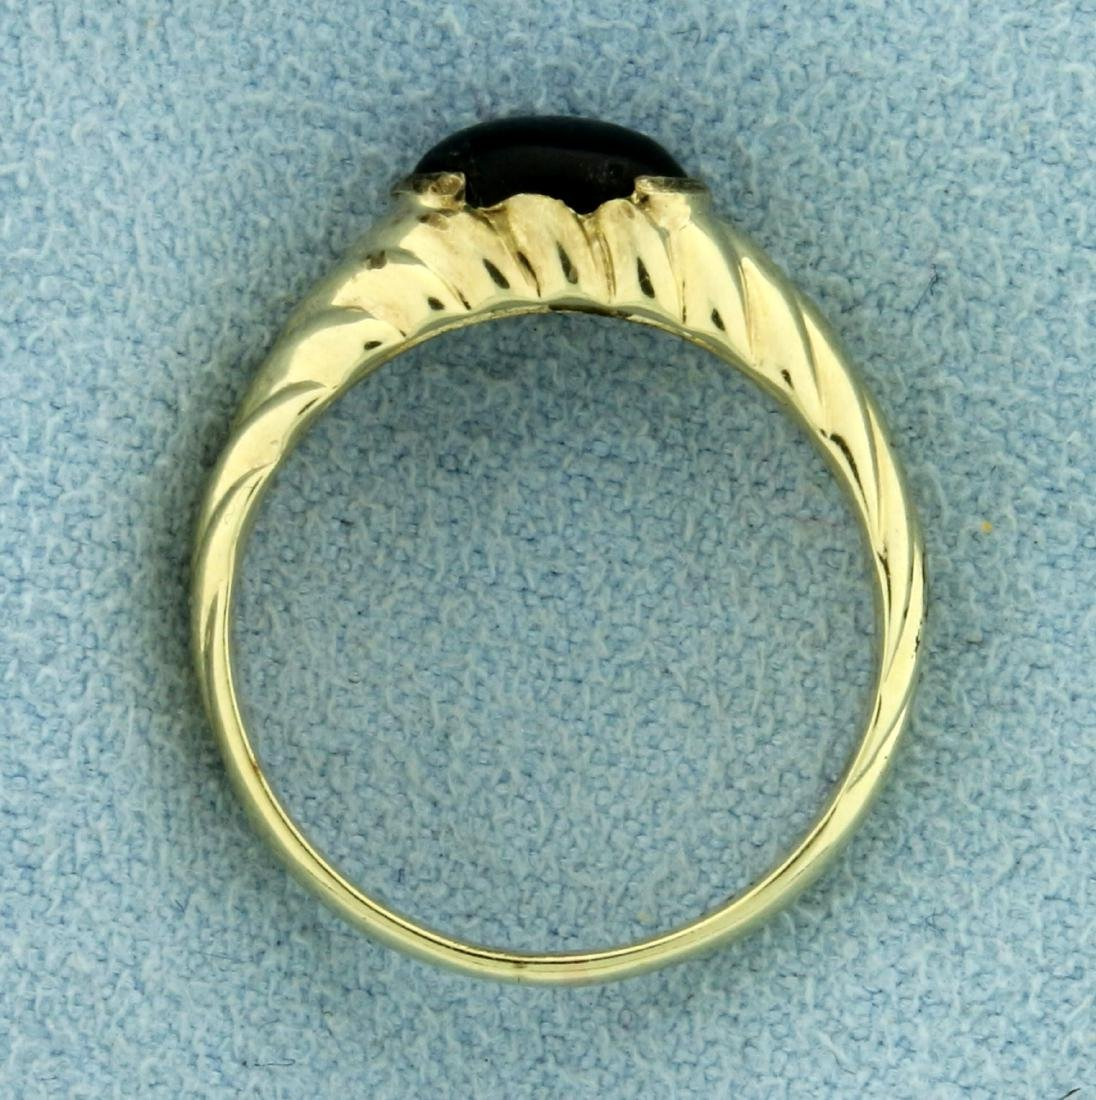 Cabochon Onyx Ring in 14K Yellow Gold - 3